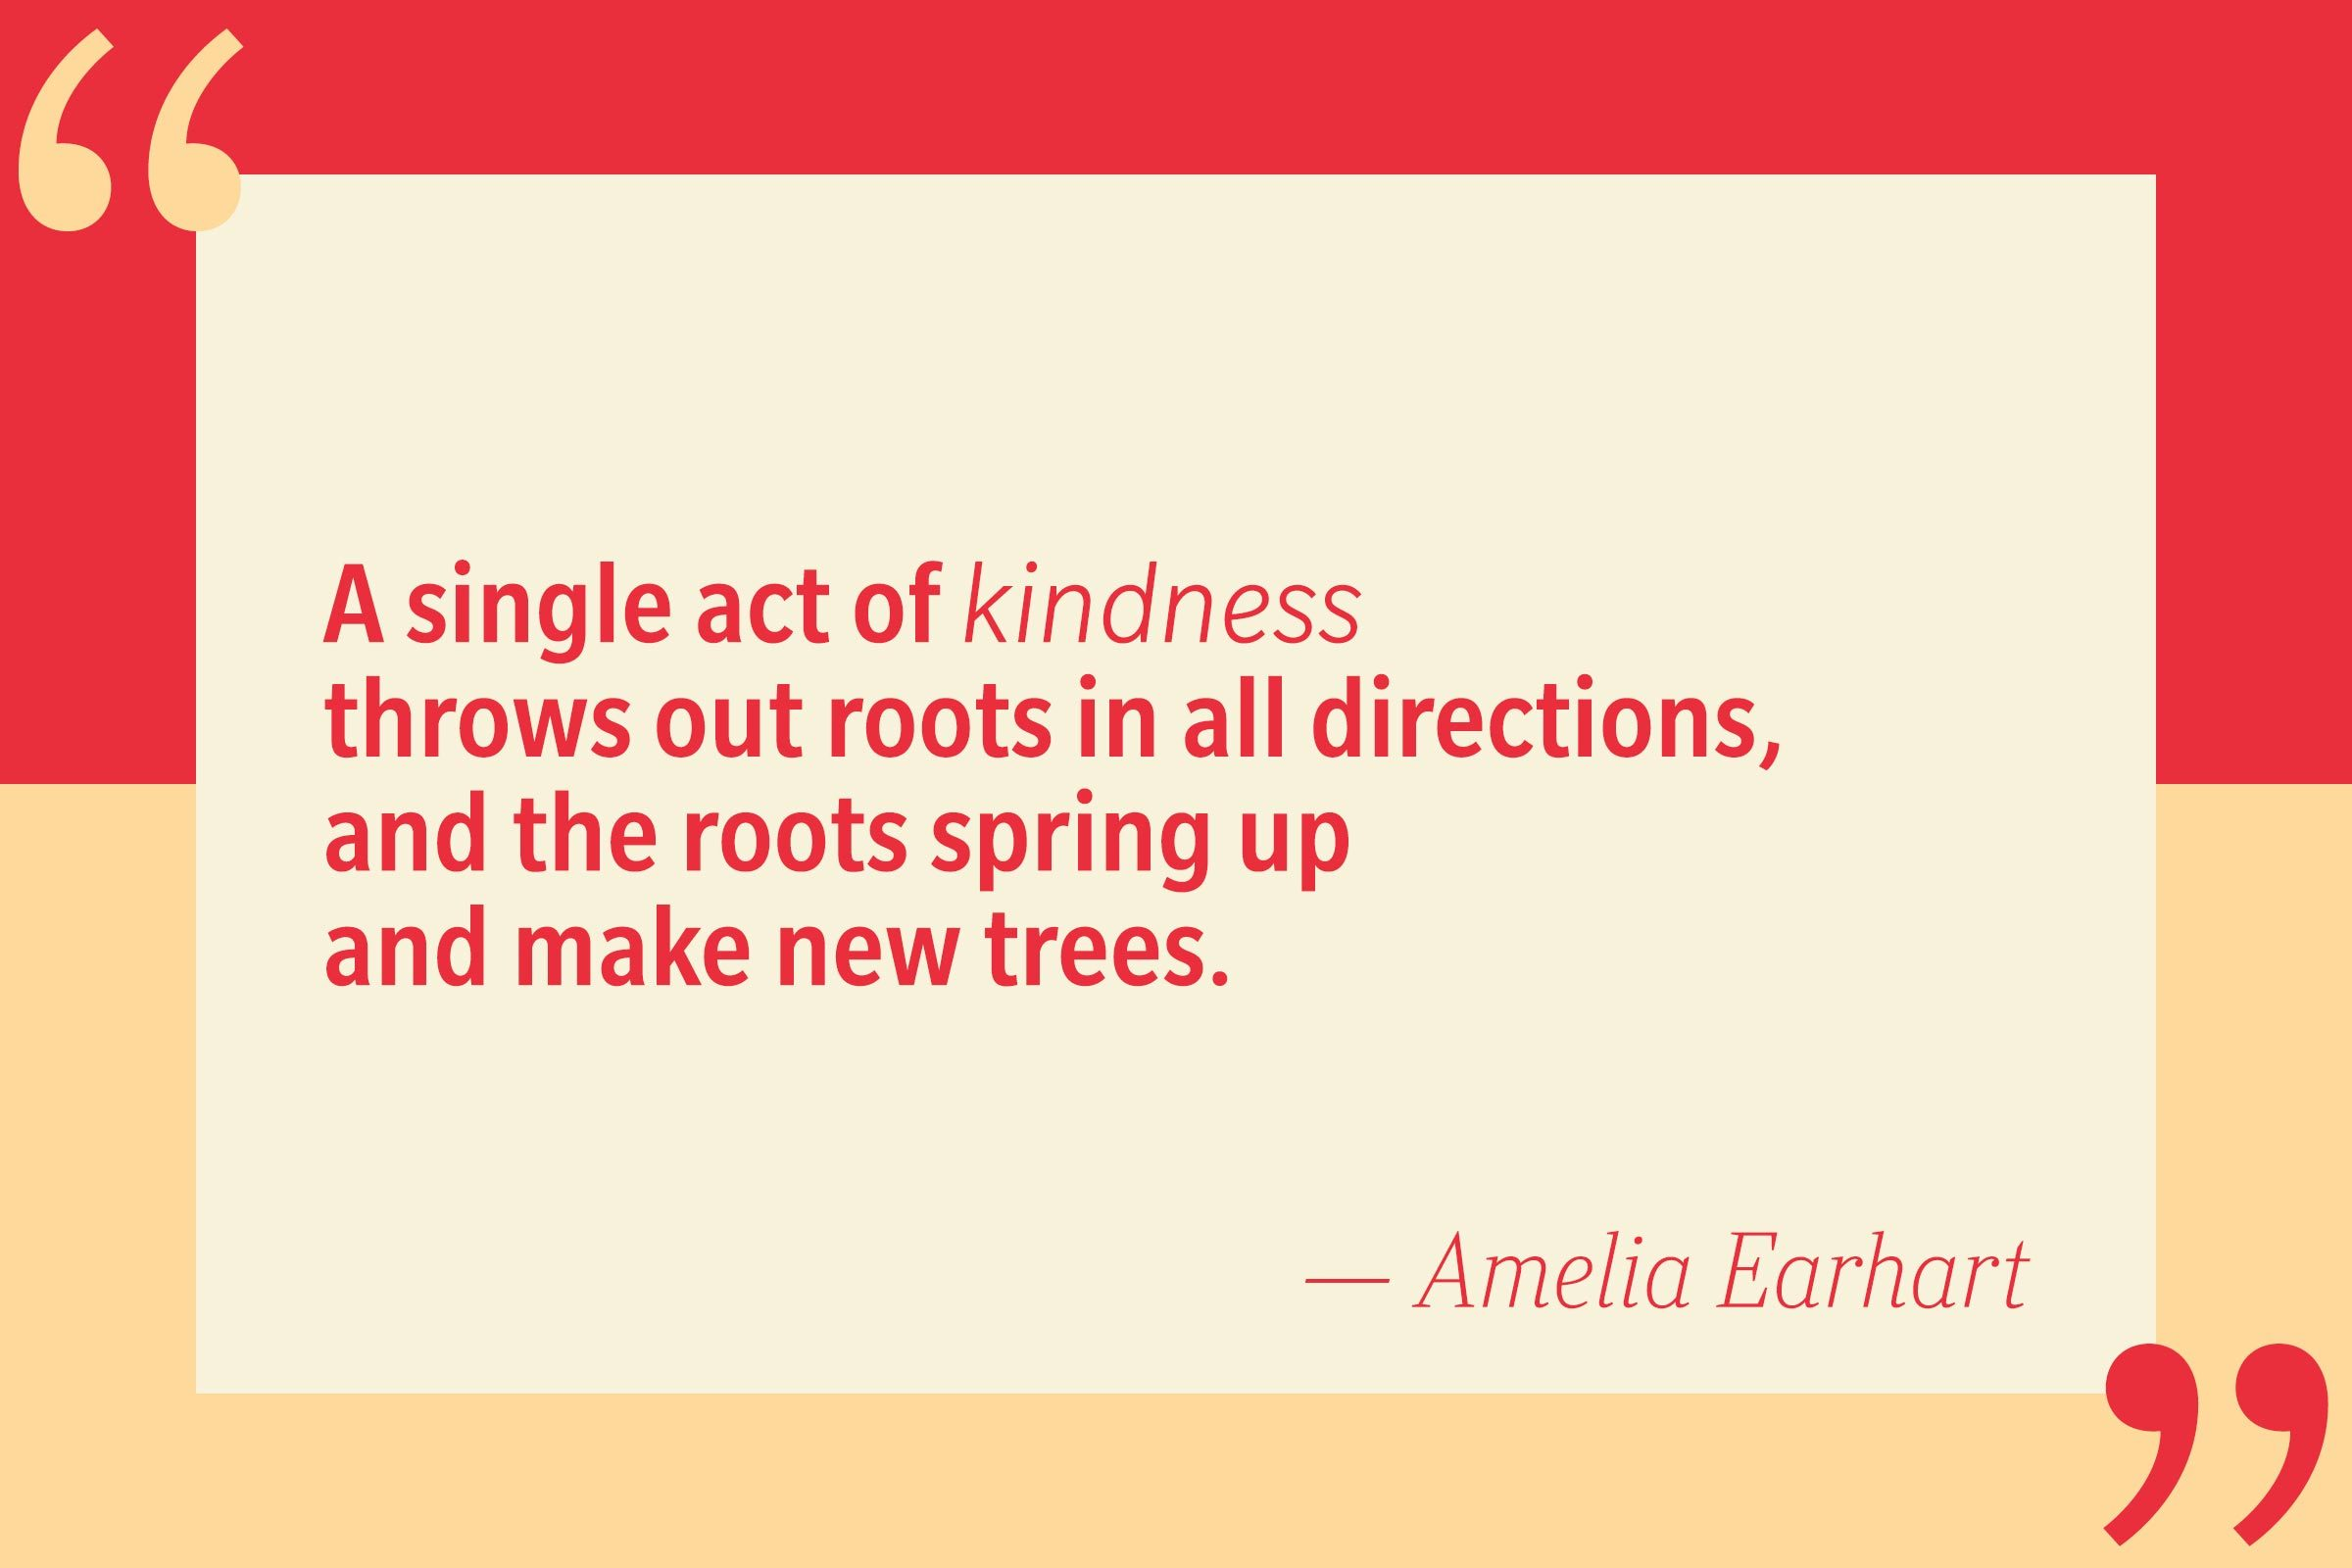 A single act of kindness throws out roots in all directions, and the roots spring up and make new trees. — Amelia Earhart